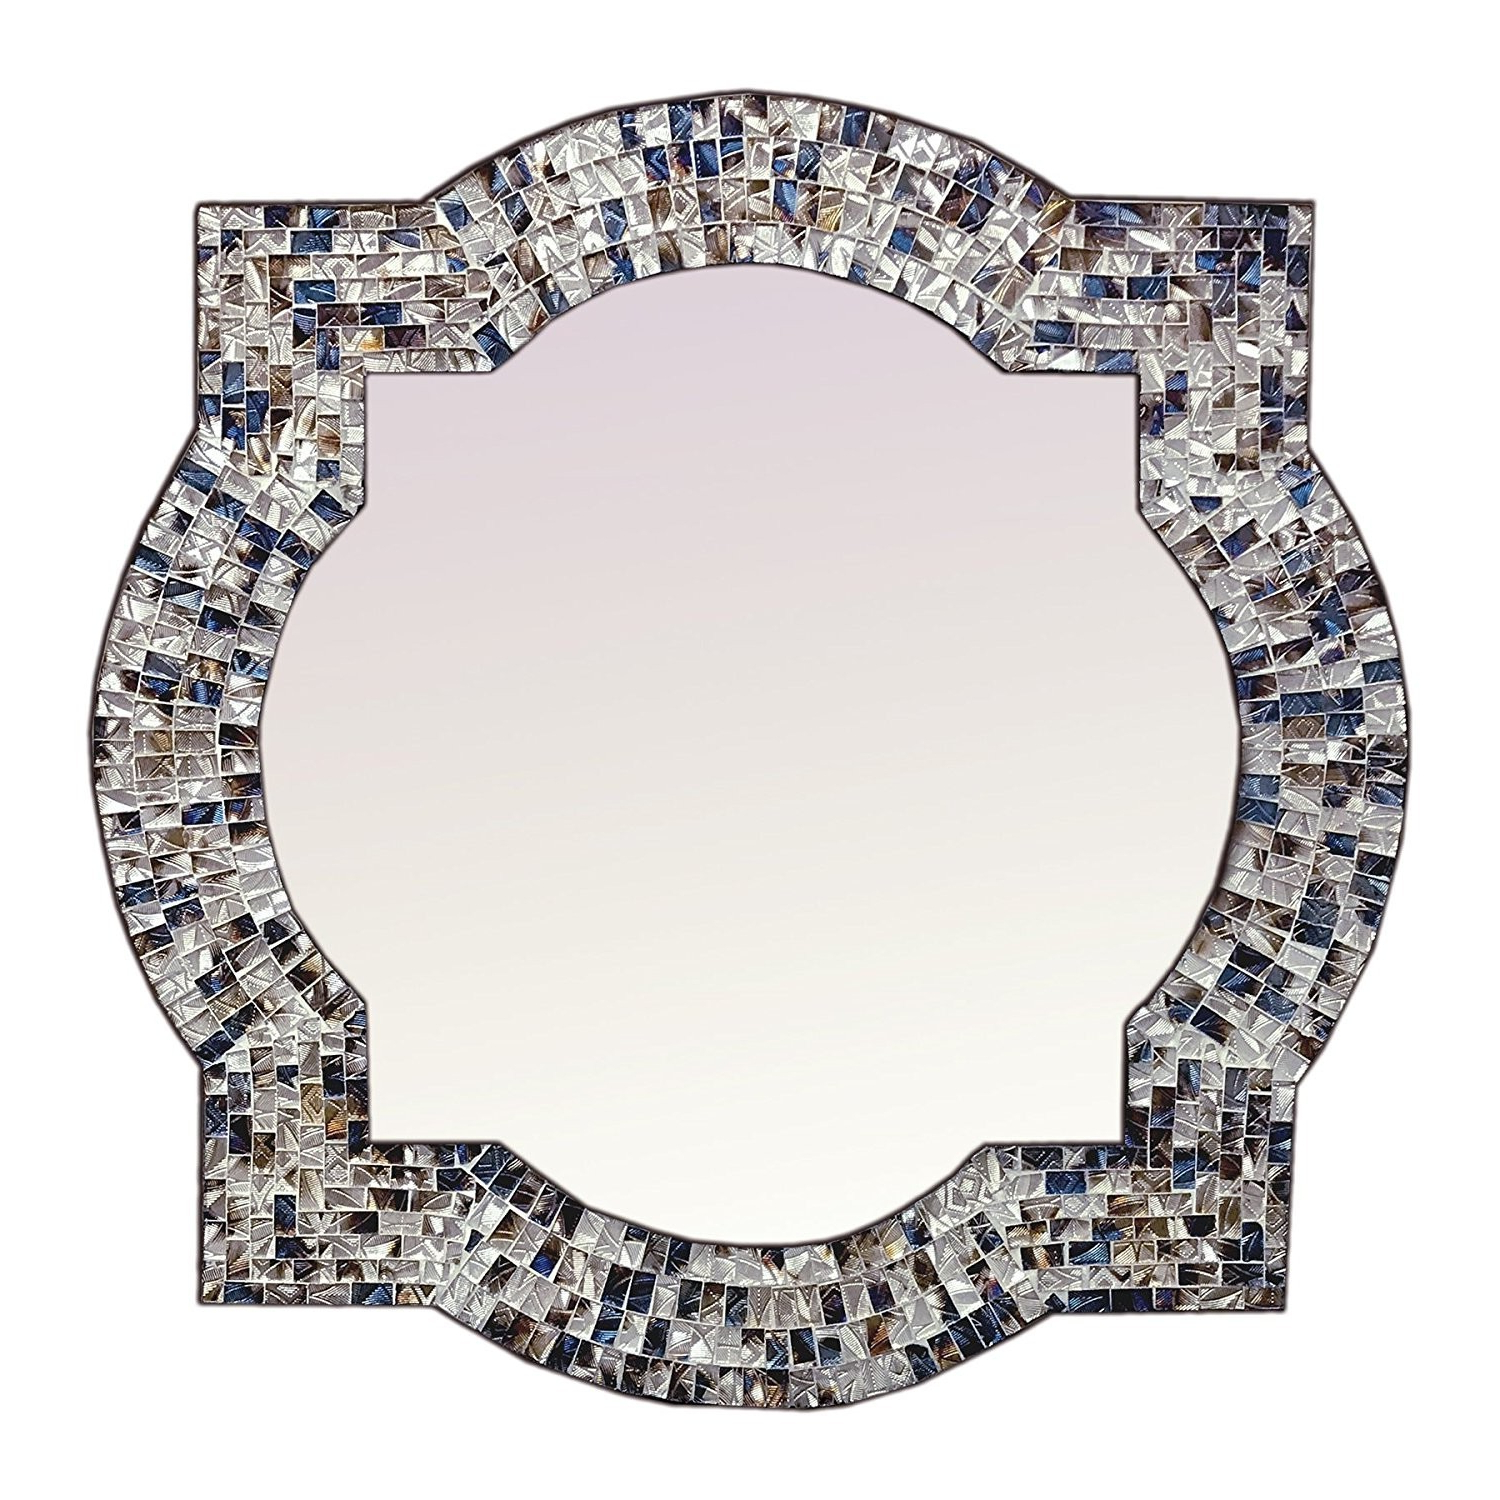 """Widely Used Mosaic Framed Wall Mirrors Intended For Andalusian Quatrefoil Mirror, Lindaraja Designer Mosaic Glass Framed Wall  Mirror, 24""""x24"""" Colorful Wall Mirror (Multi Silver) (View 20 of 20)"""